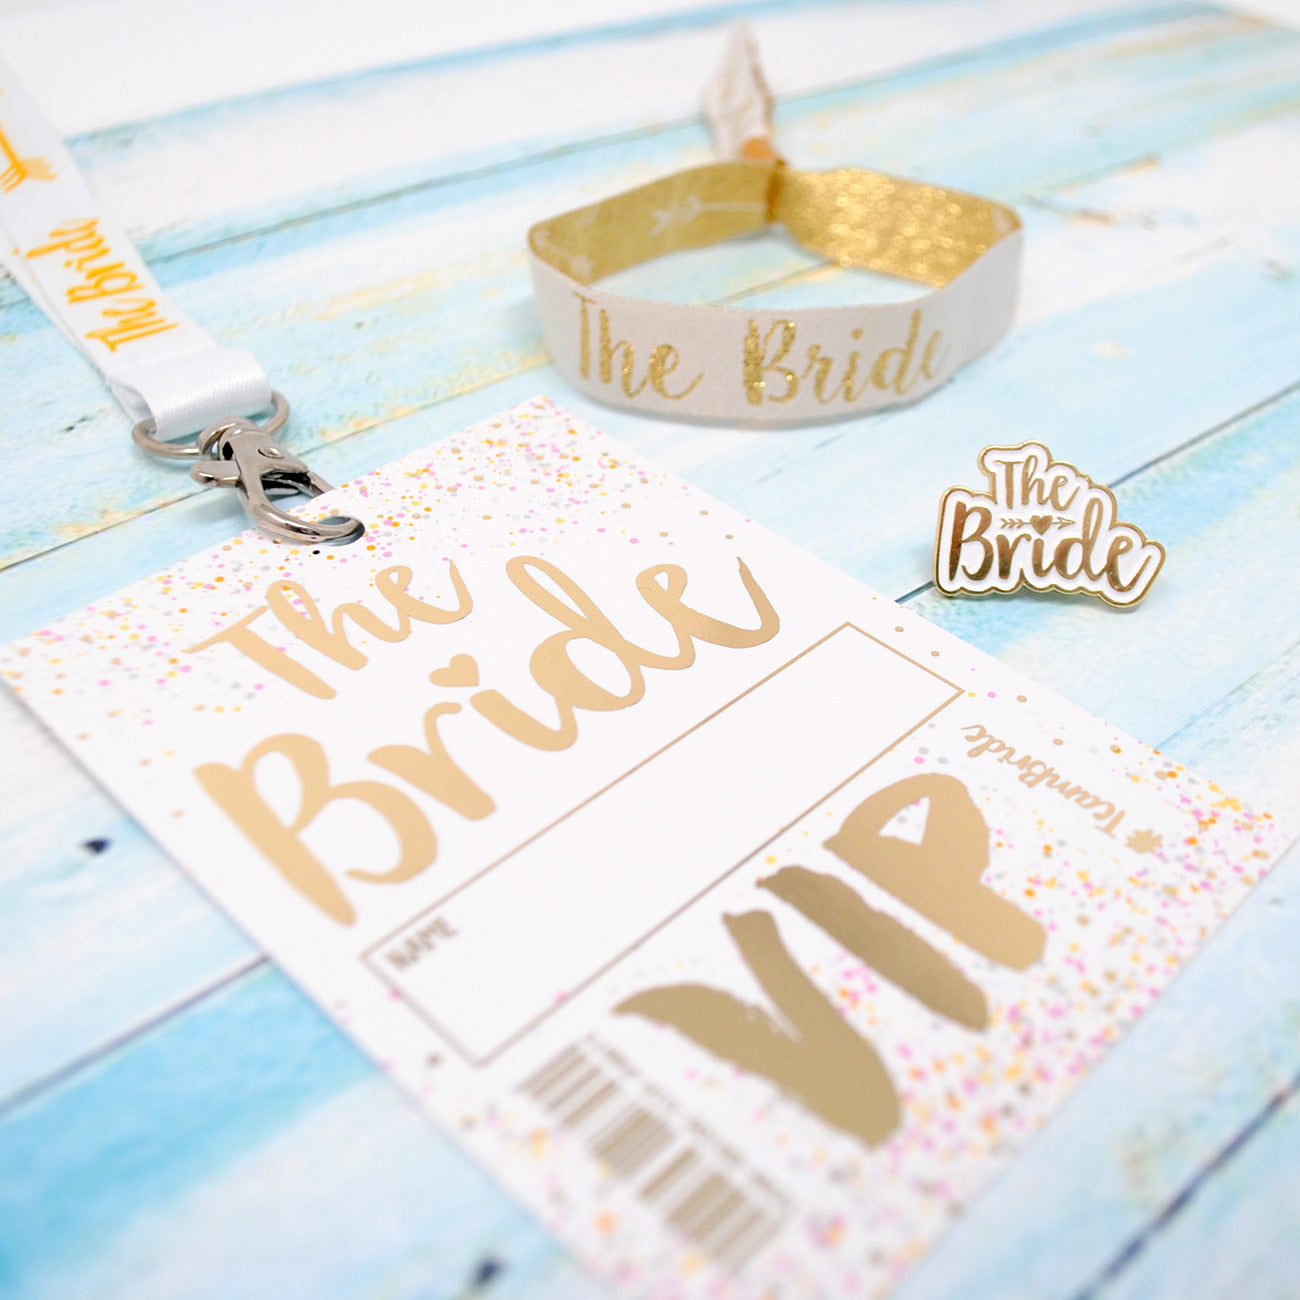 bride to be hen do party accessories wristband lanyard badge